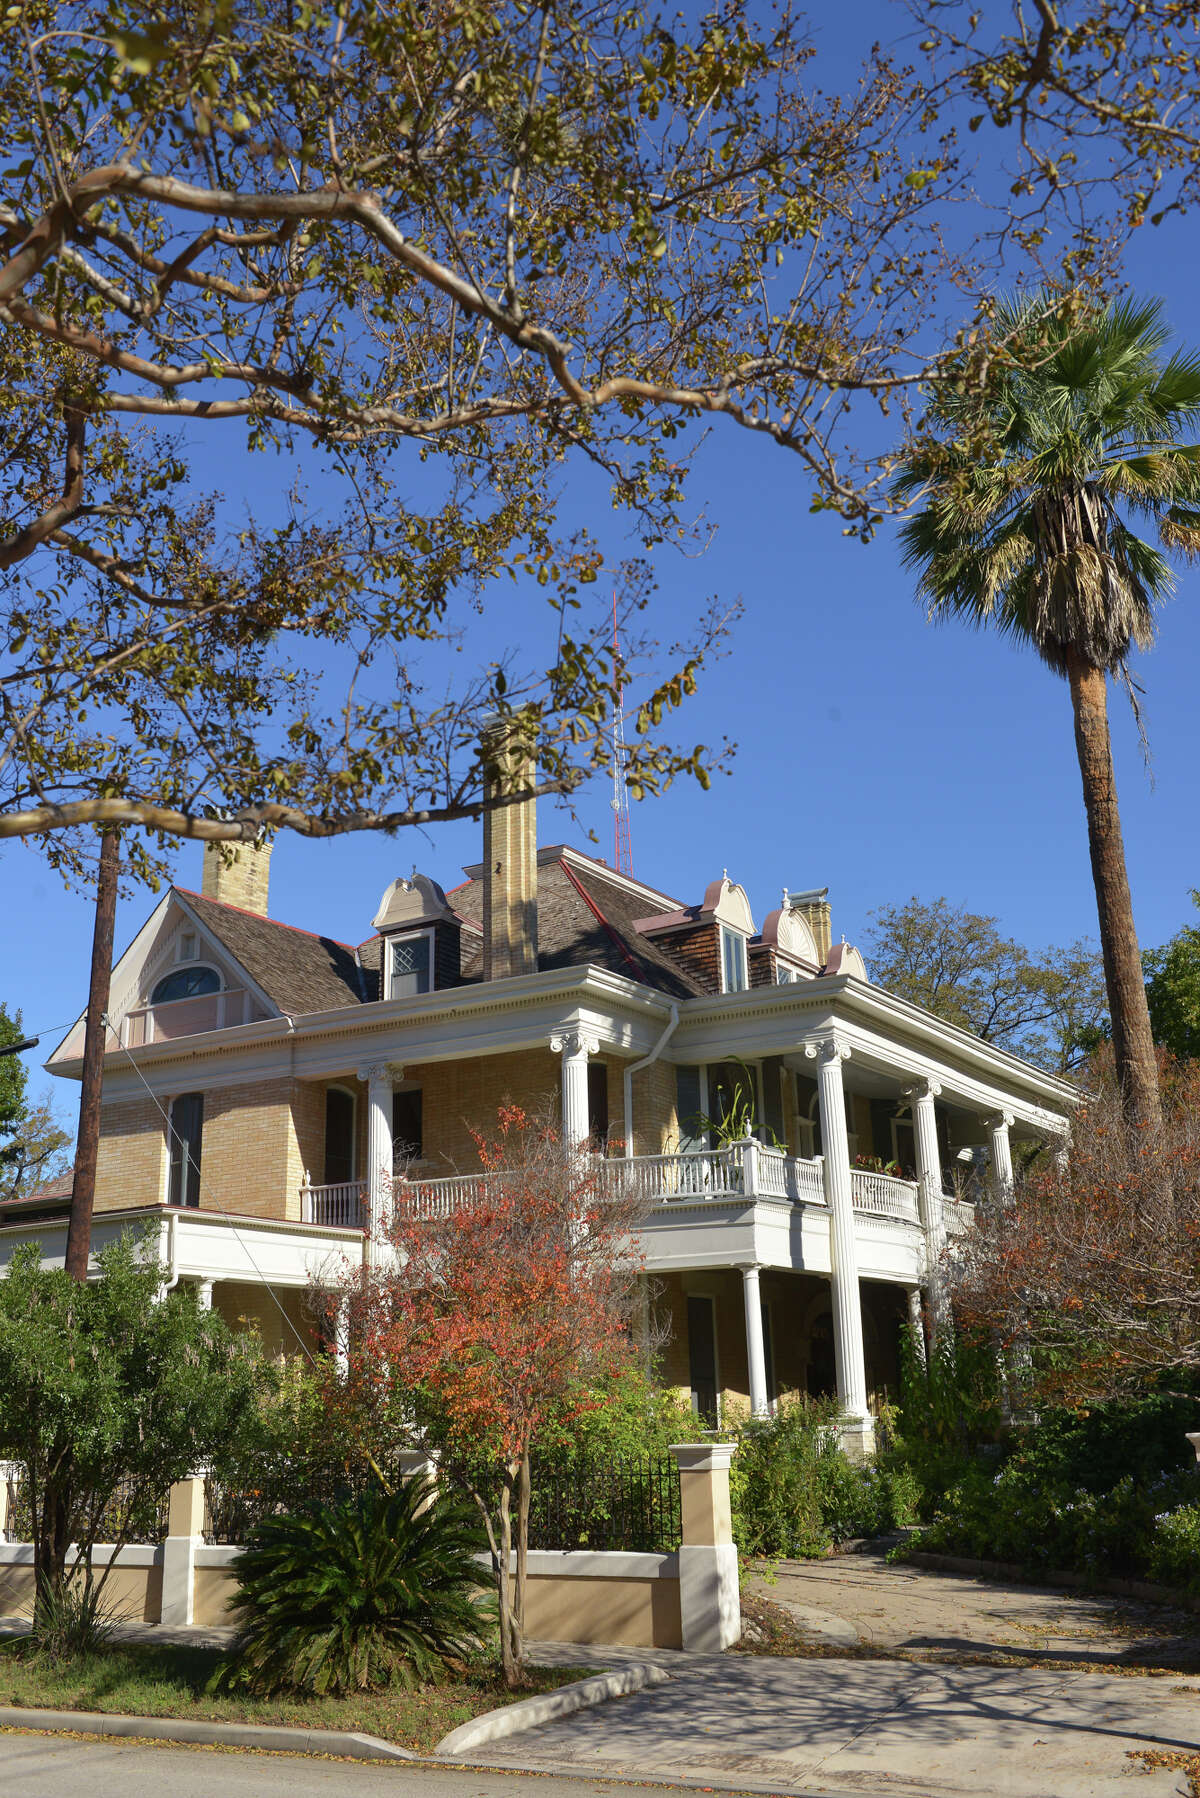 This King William is one of five private residences included in the home tour on Saturday.